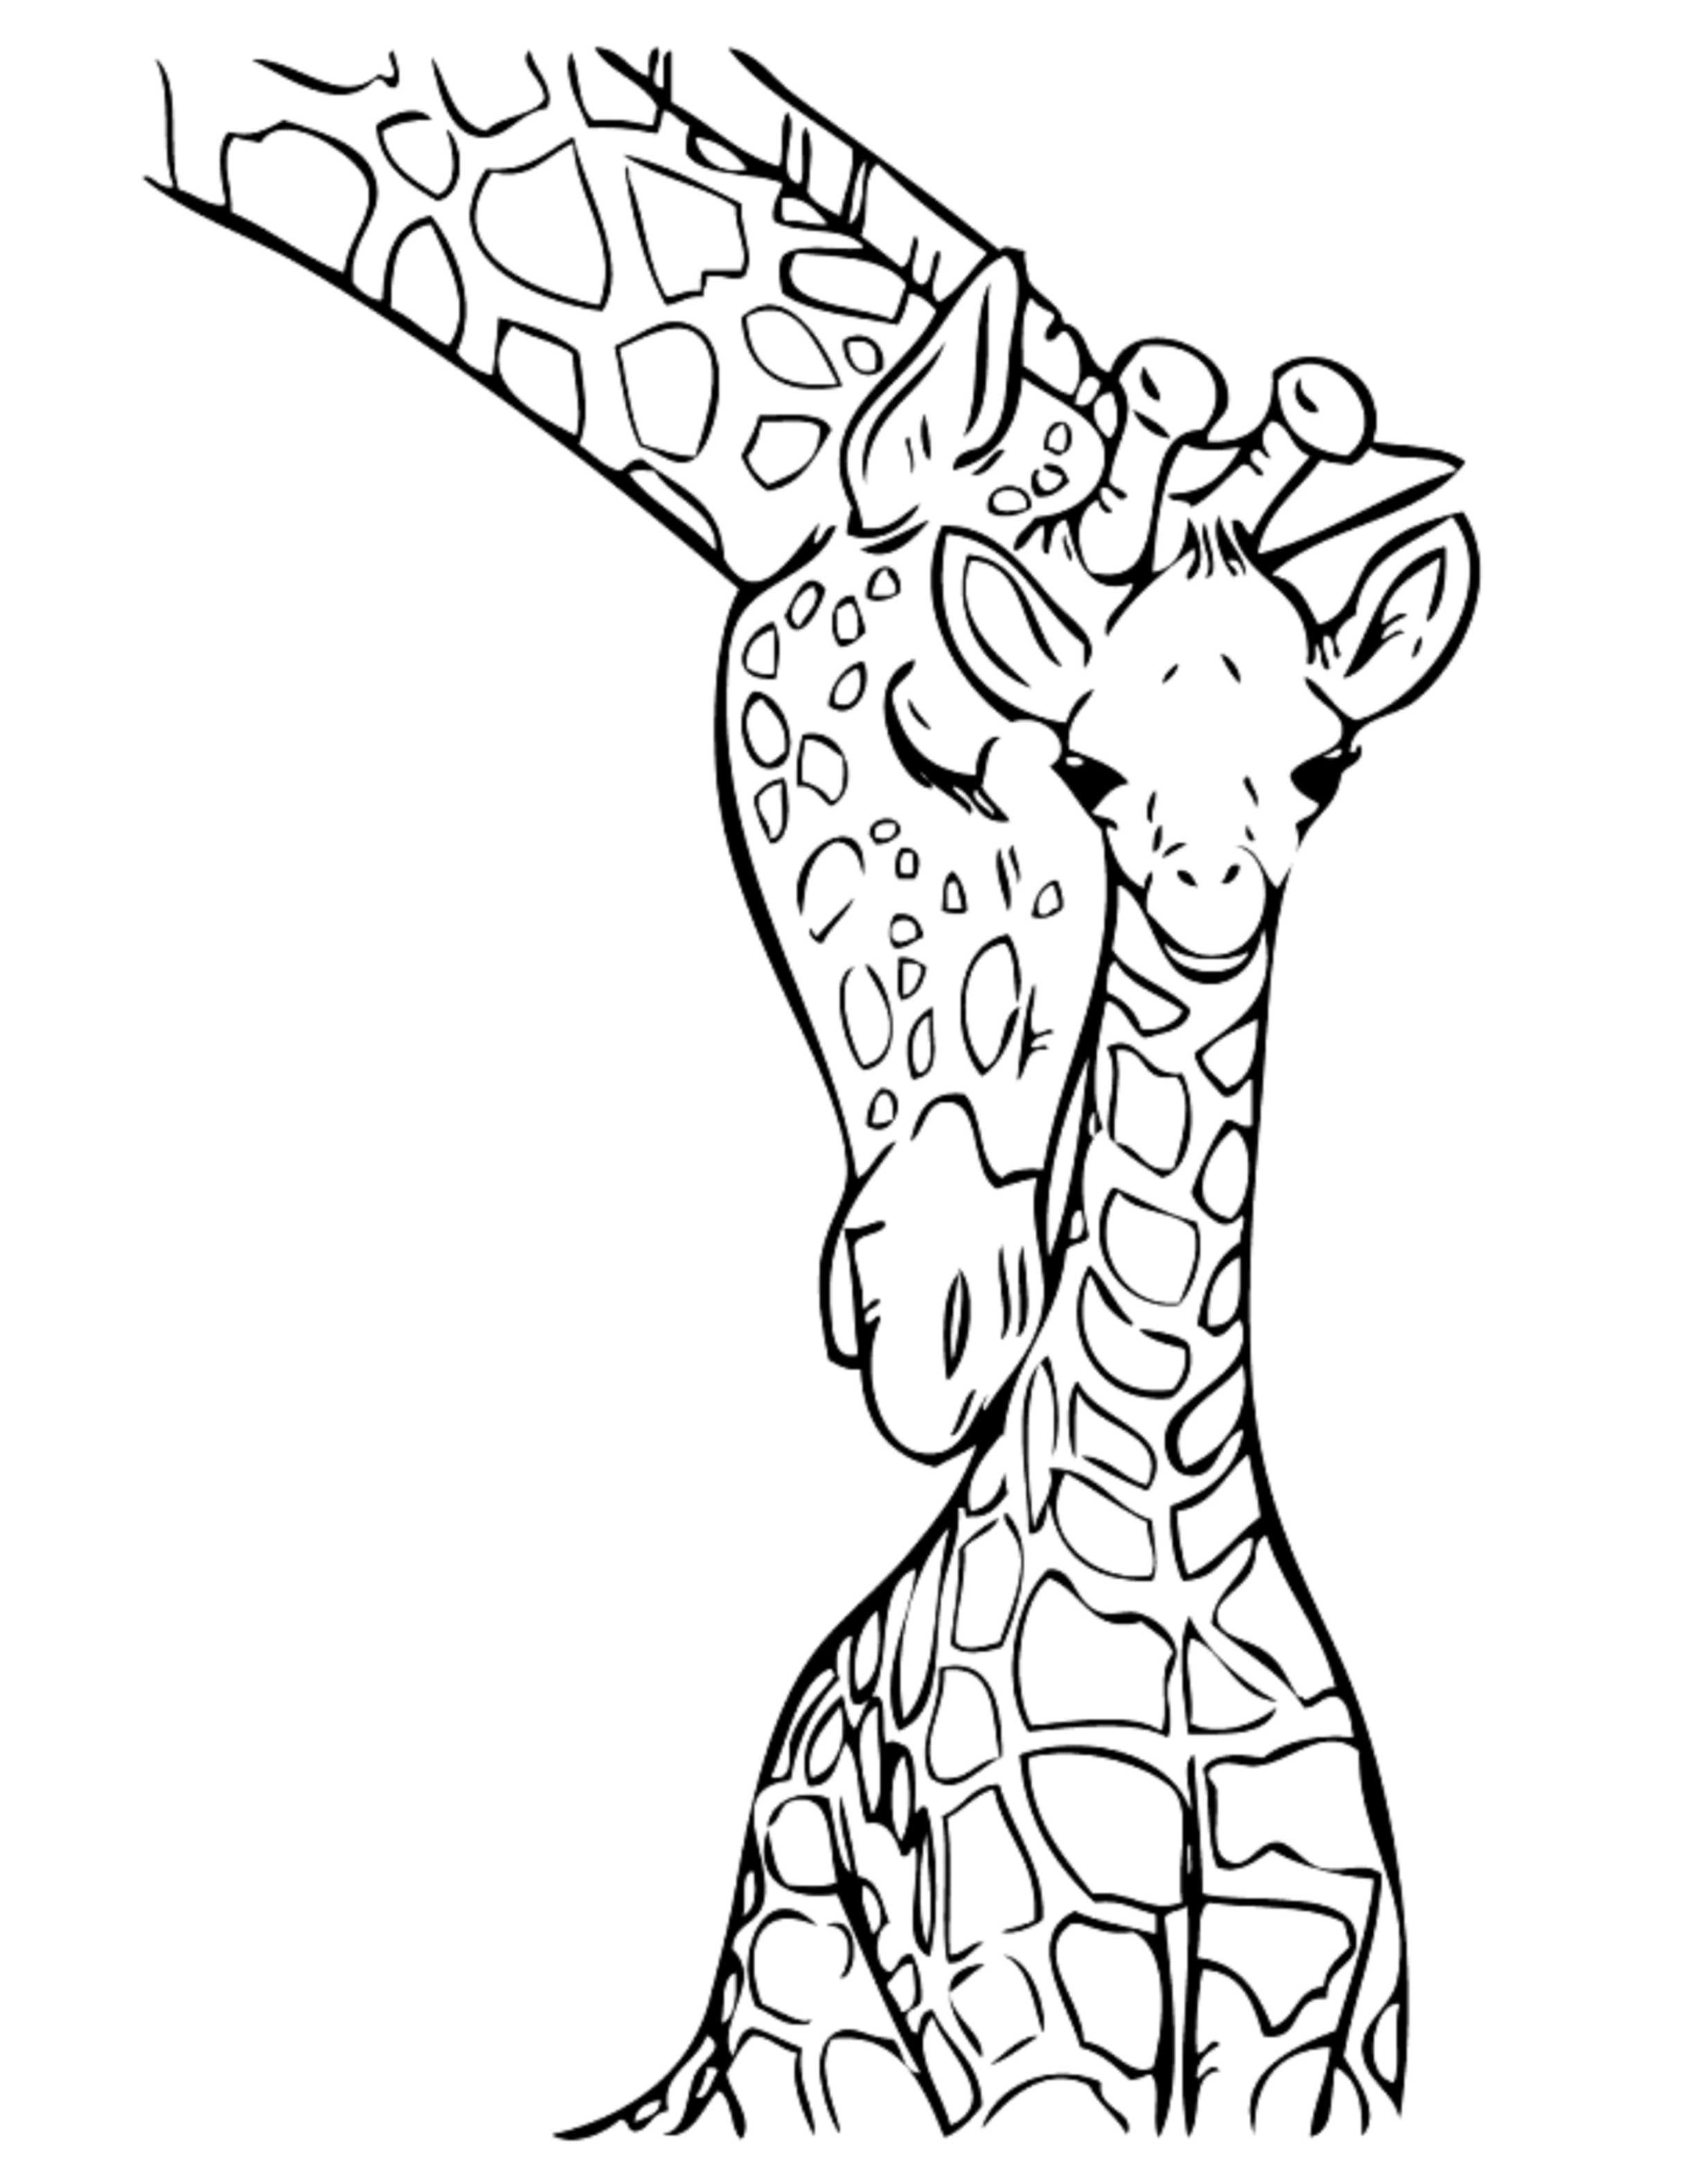 Print download giraffe coloring pages for kids to have fun for Giraffe coloring pages to print